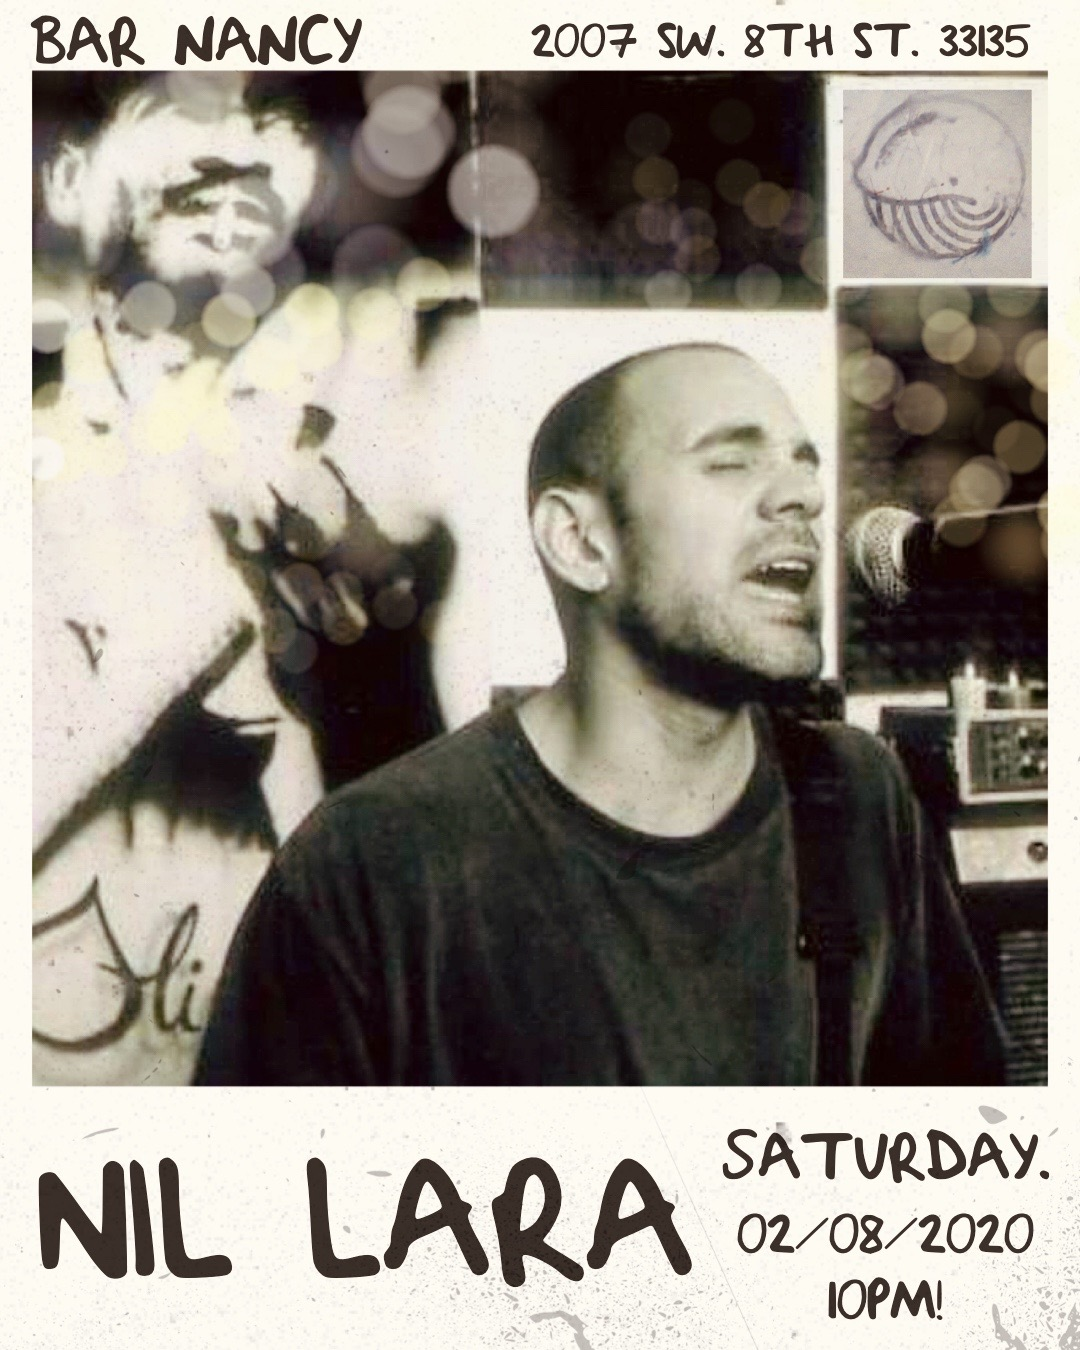 Nil Lara Live at Bar Nancy!